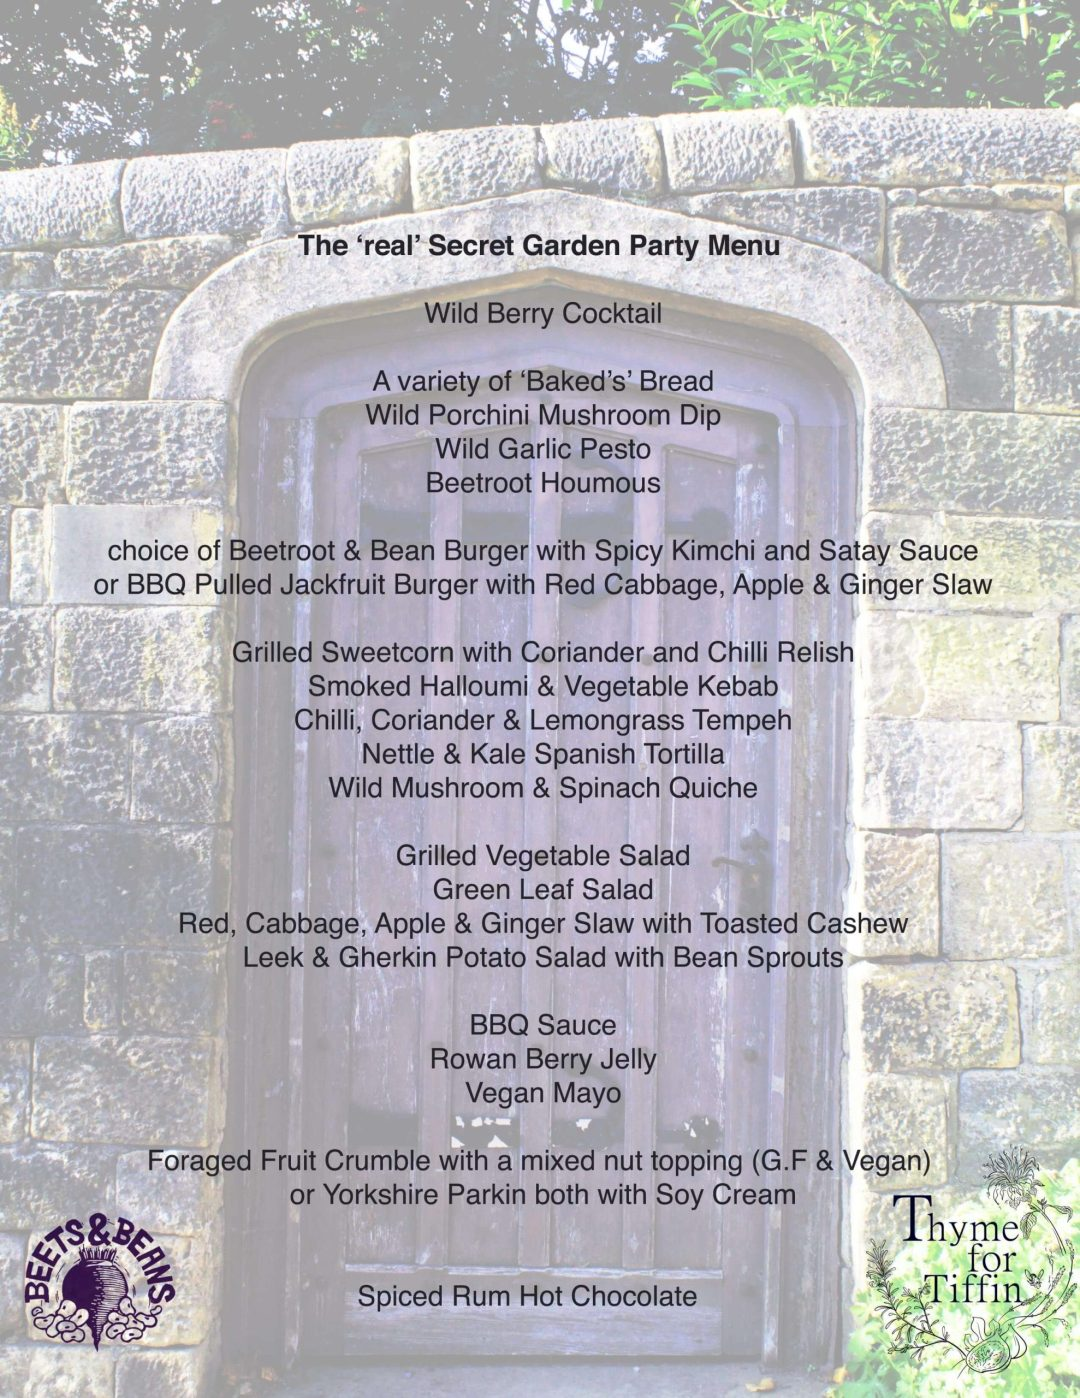 thyme for tiffin catering menu